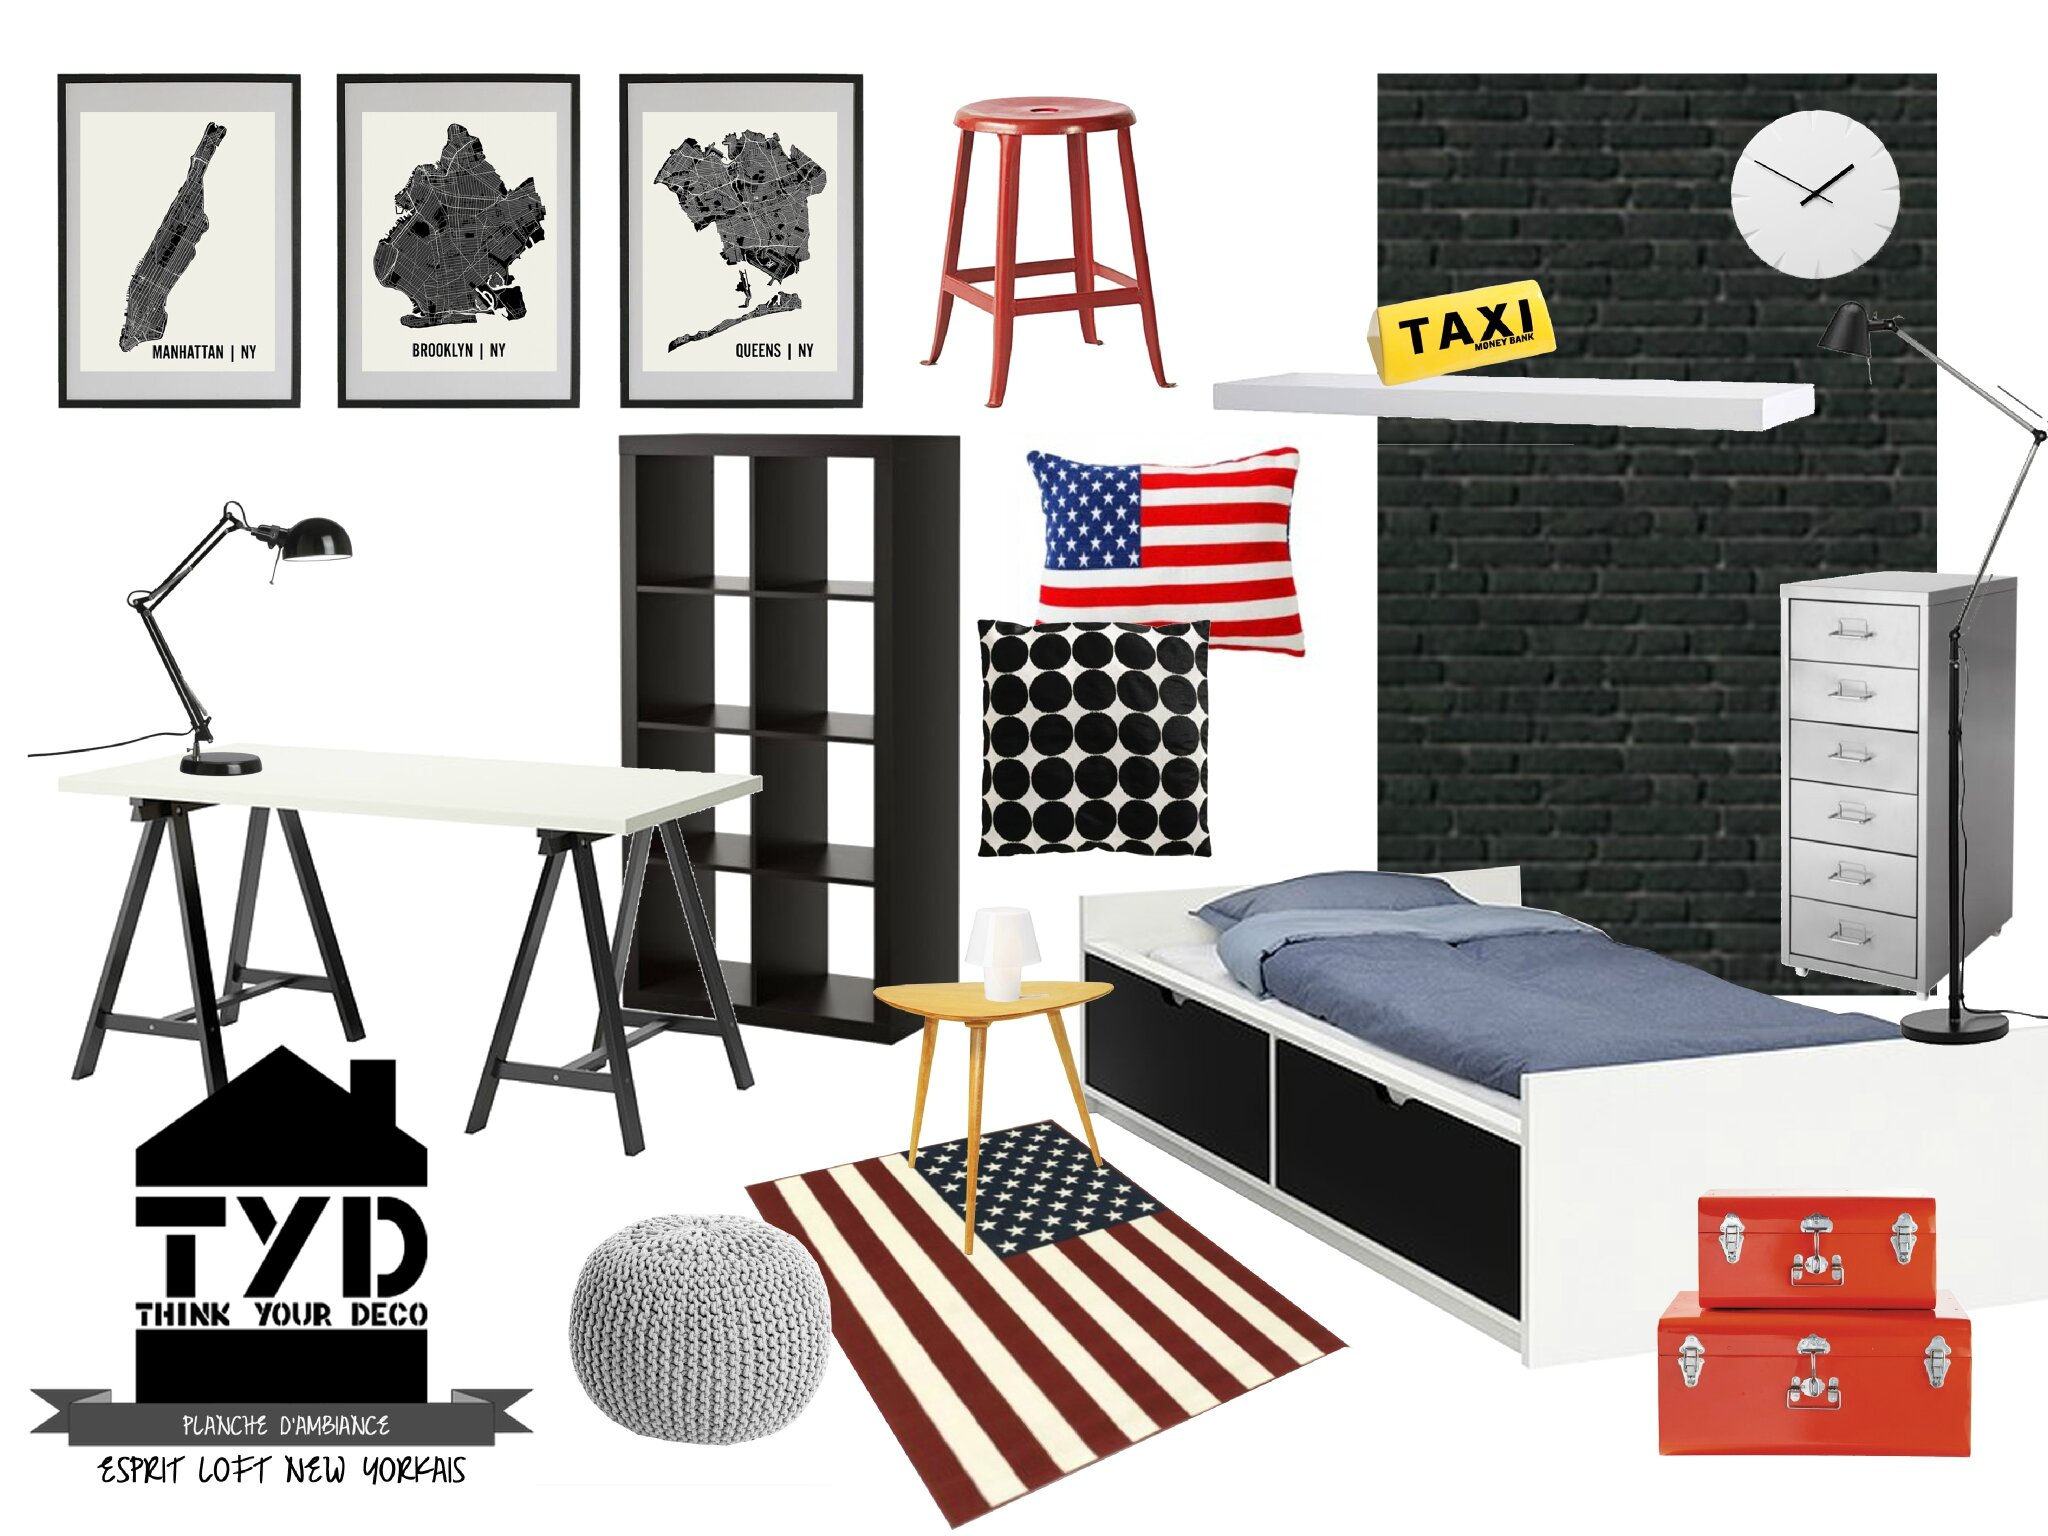 chambre d 39 ado i tyd think your deco coach d co nord lille p v le. Black Bedroom Furniture Sets. Home Design Ideas